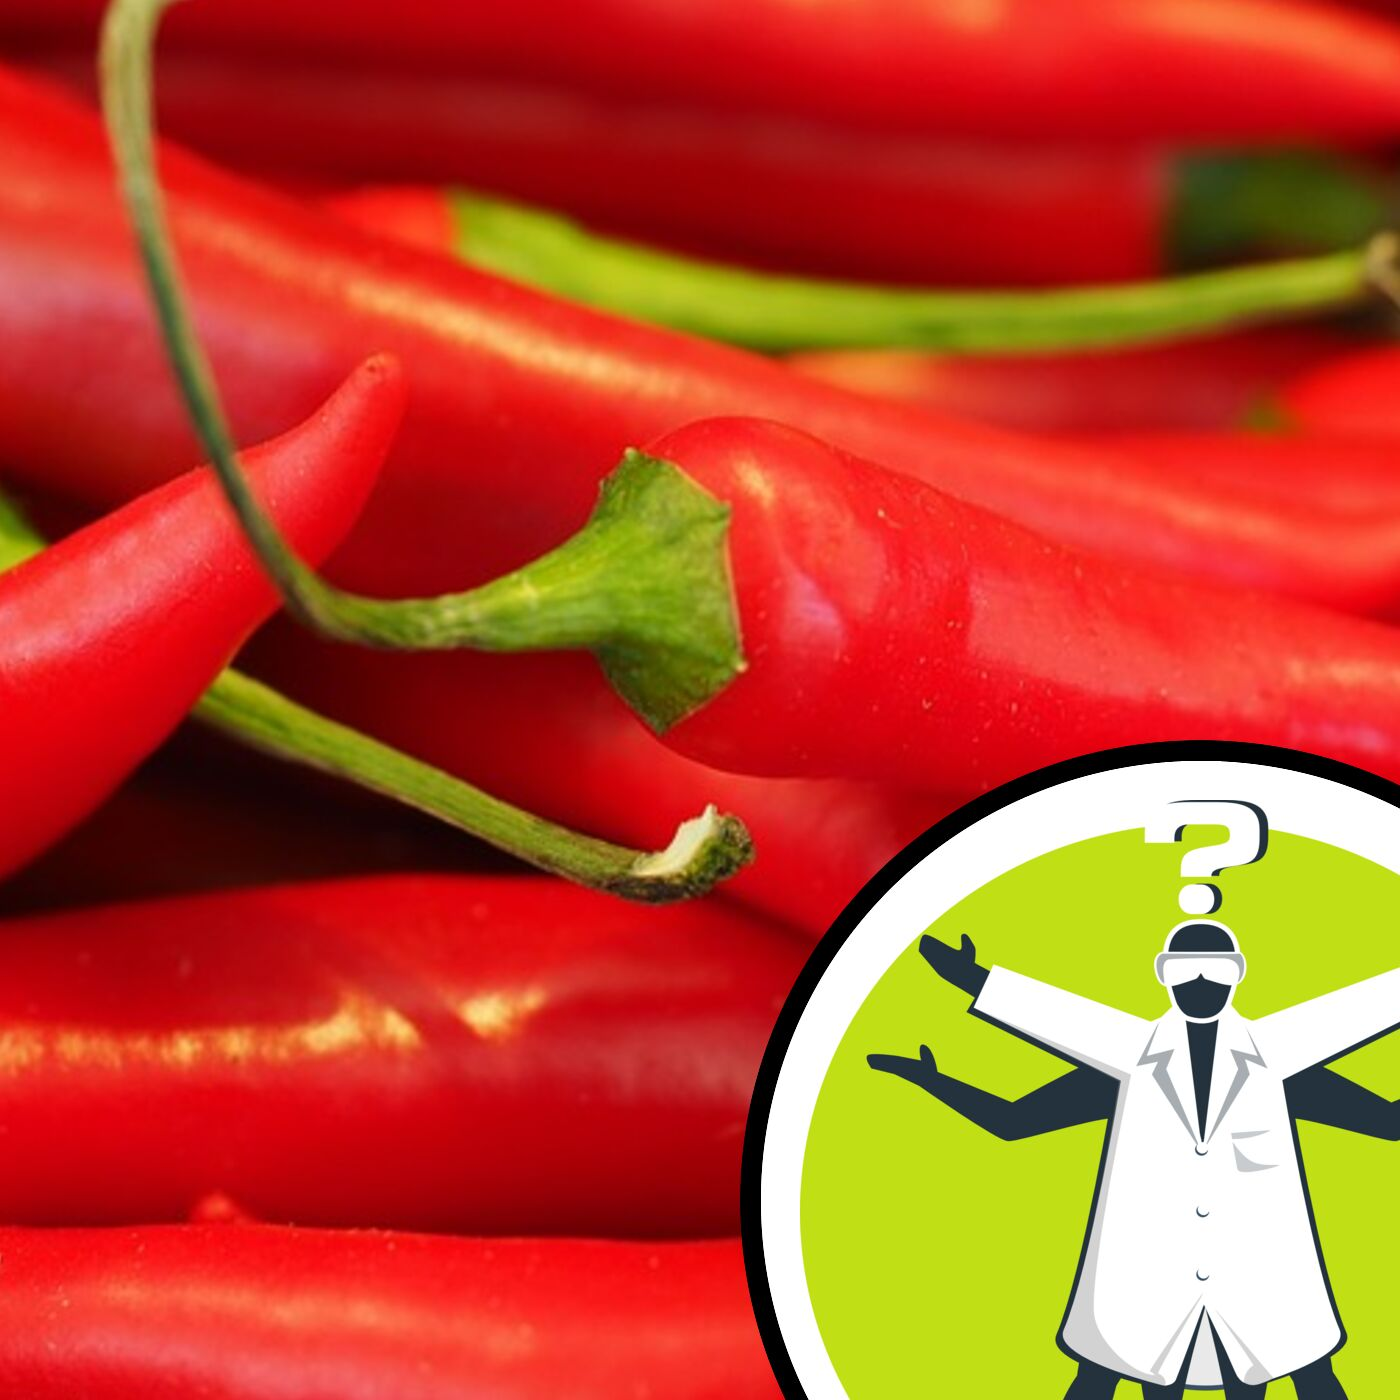 Why do chillies stay on your hands?